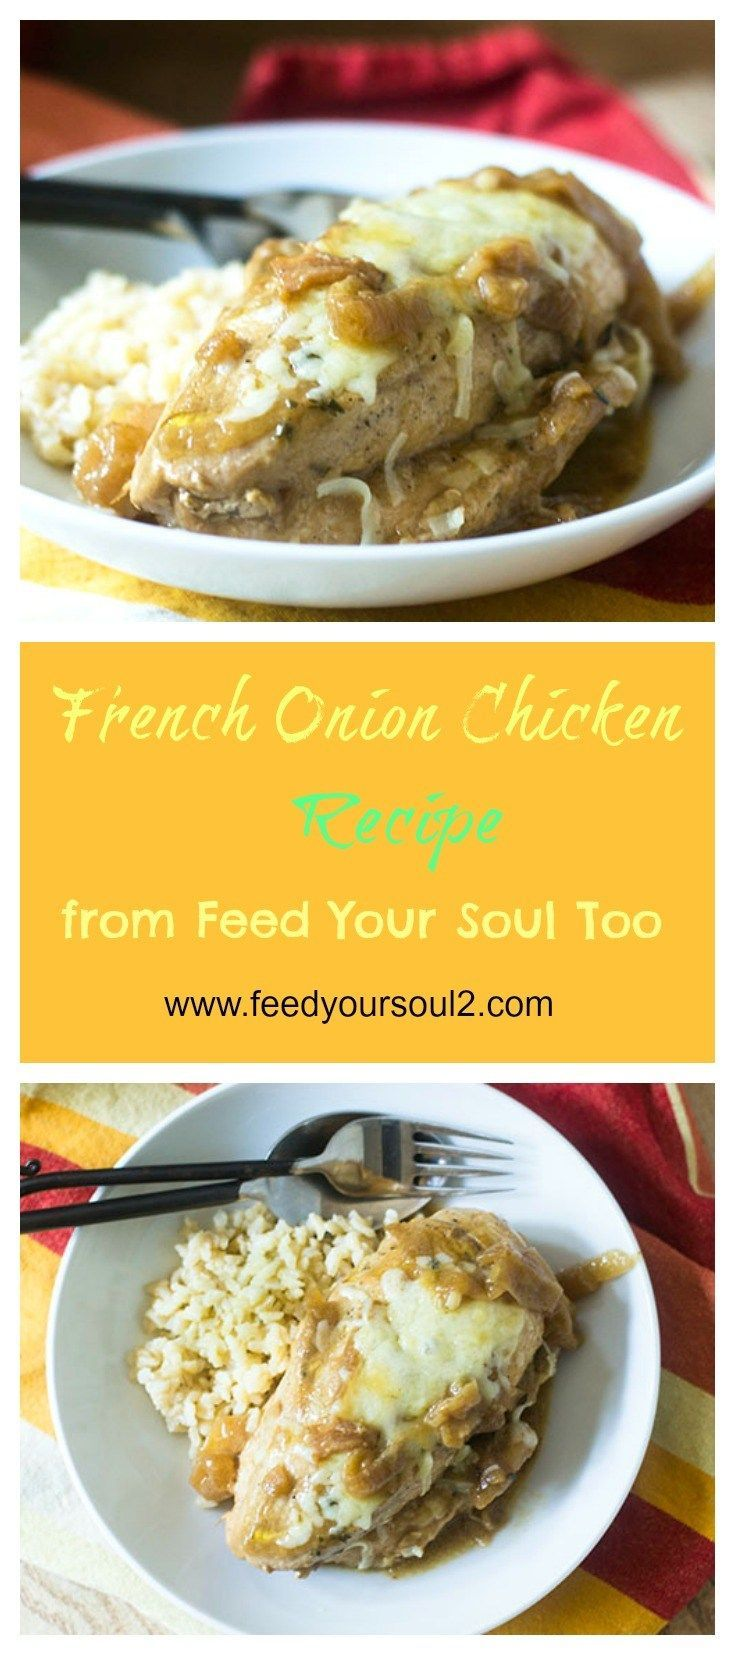 French onion chicken recipe french onion chicken onions and french onion chicken recipe french onion chicken onions and food groups forumfinder Image collections